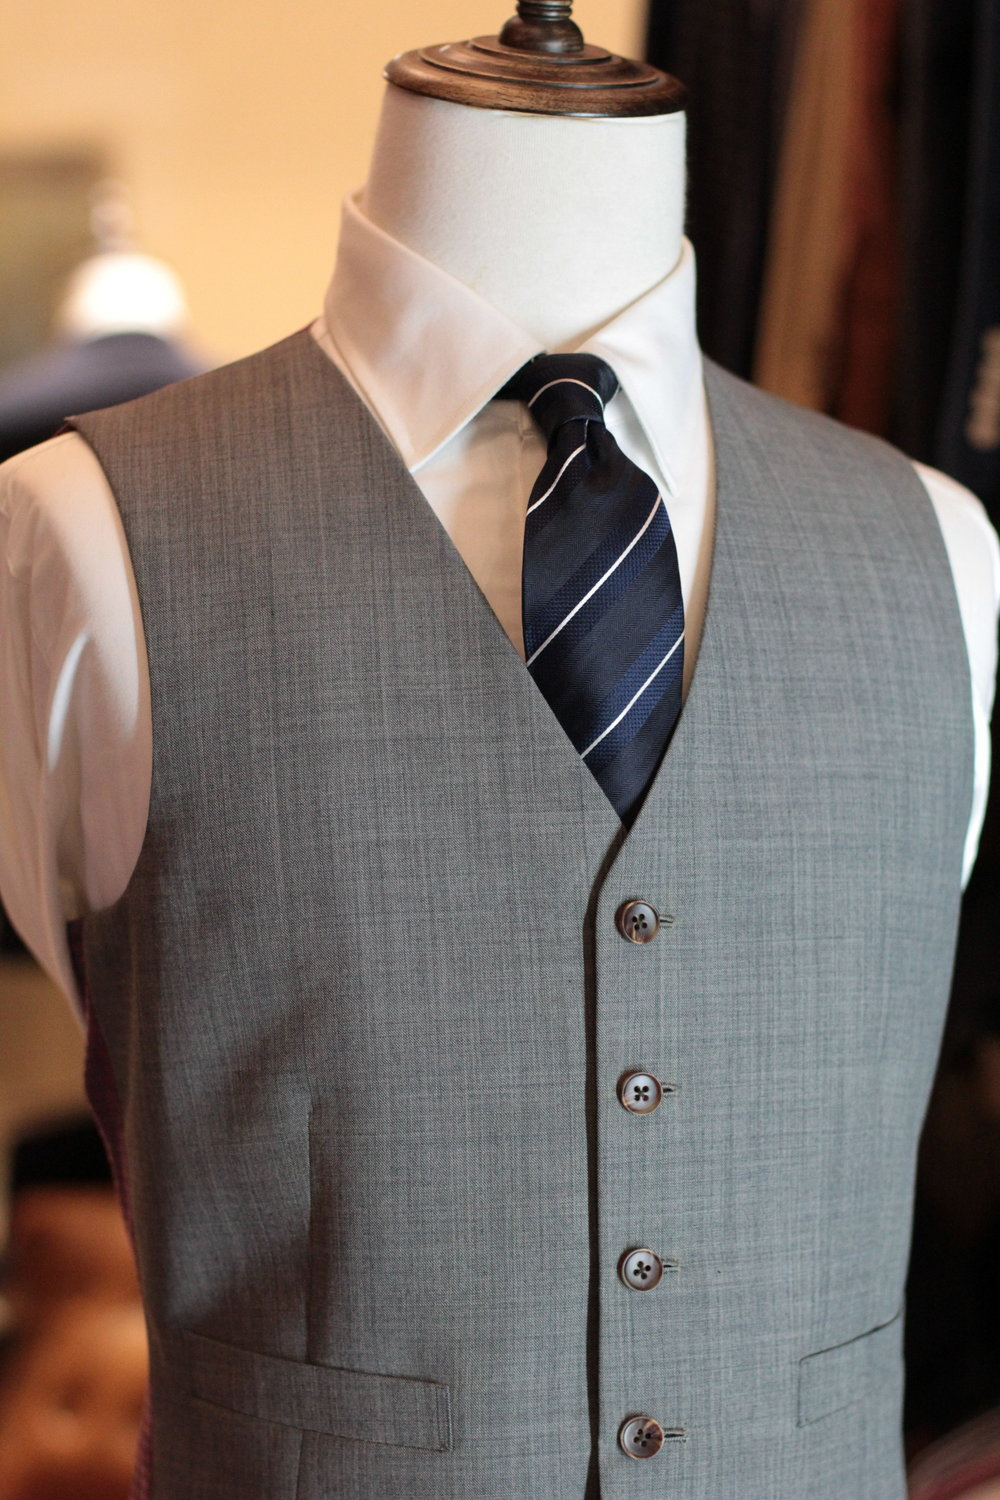 Mr Specter Waistcoat | vest|  Made Suits | tailor made suits | Singapore tailor | bespoke | tailored suit.JPG